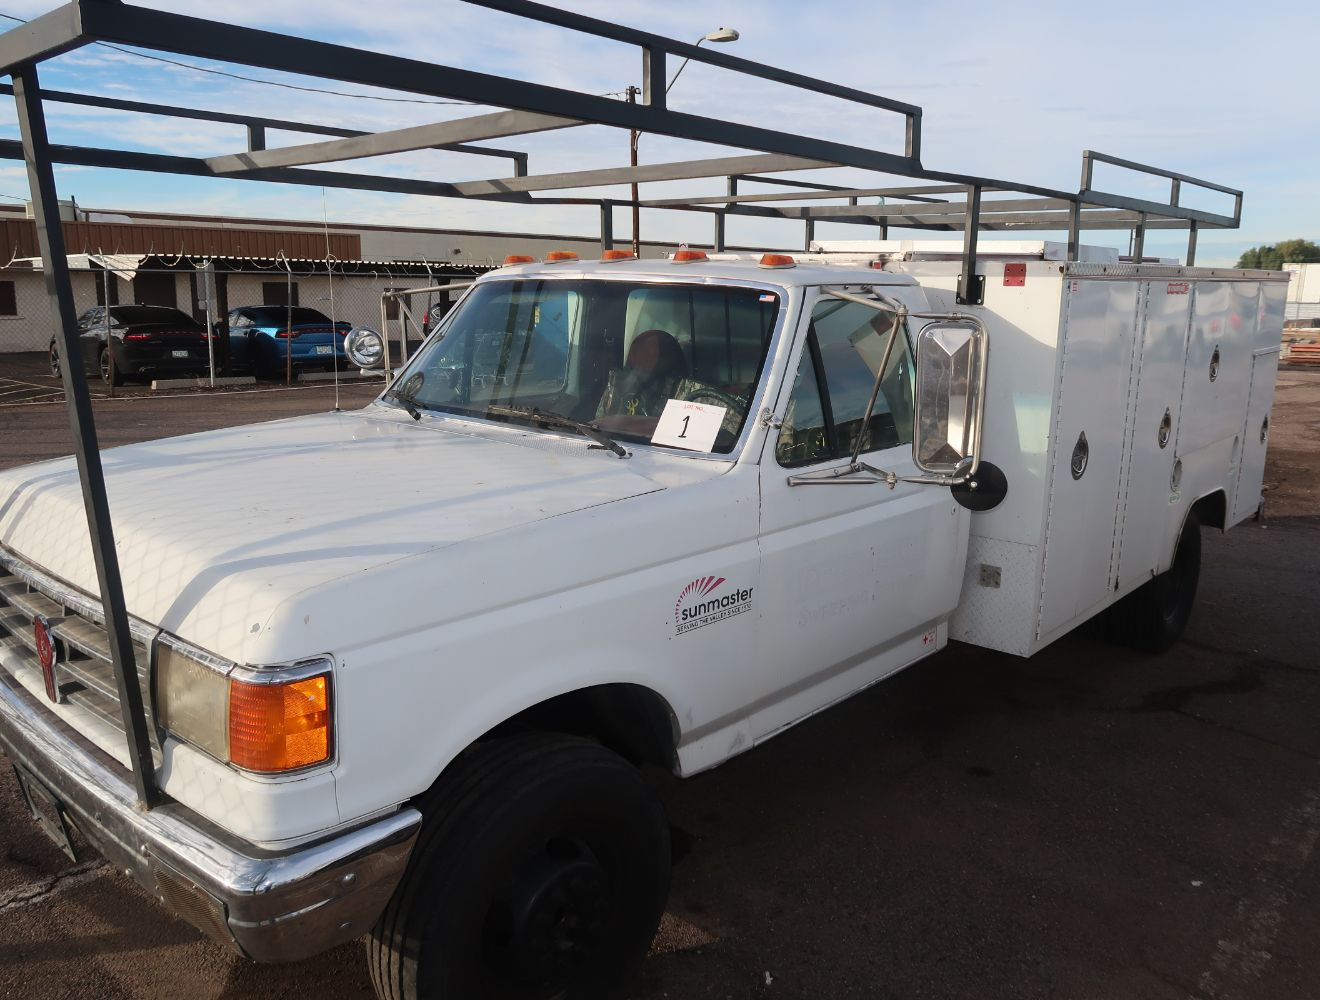 ONLINE PUBLIC AUCTION:  SUNMASTER, GENERAL CONTRACTING FIRM